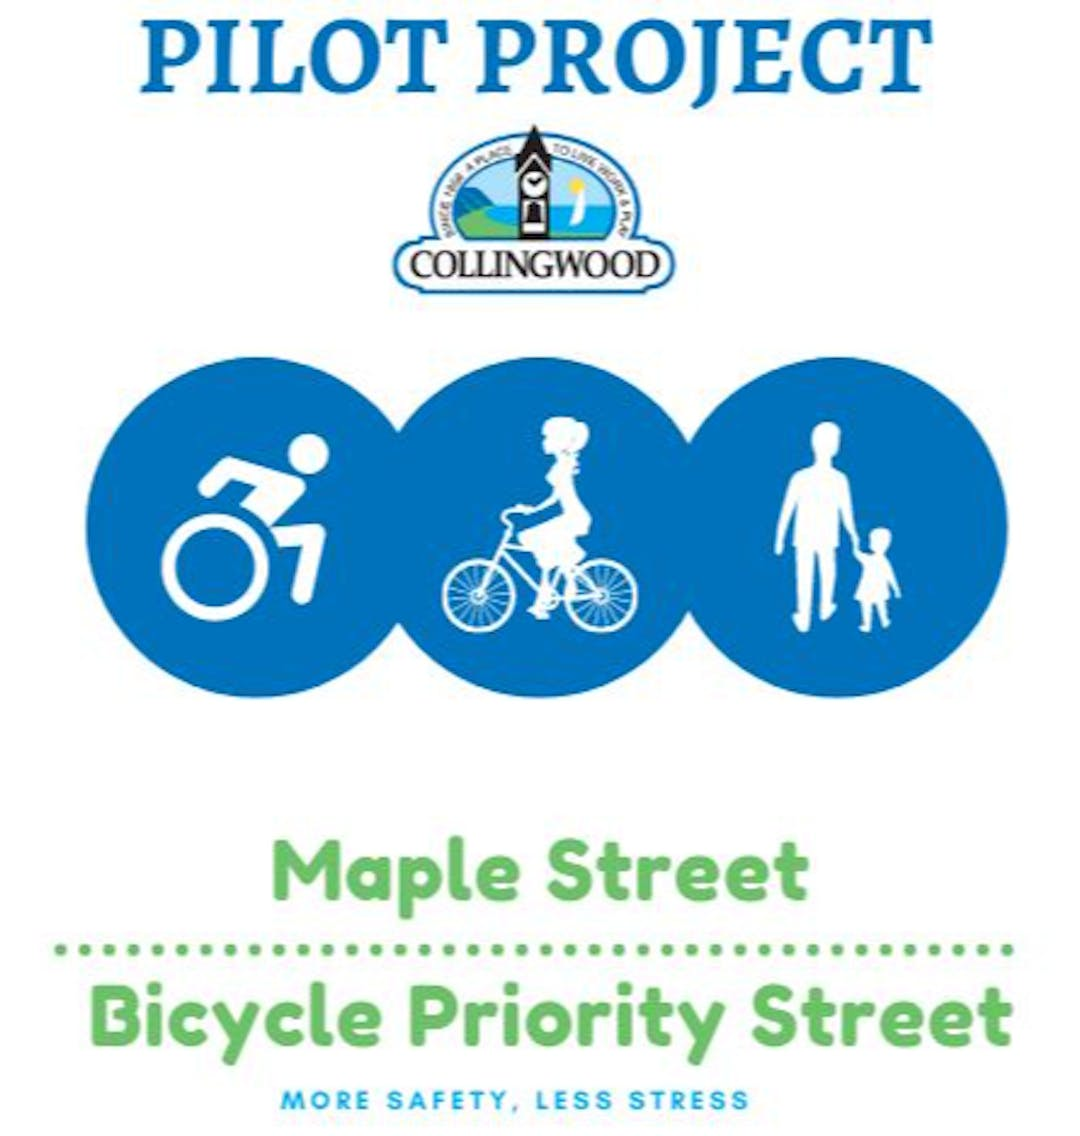 """Image of Pilot Project logo and slogan """"More safety, less stress"""""""